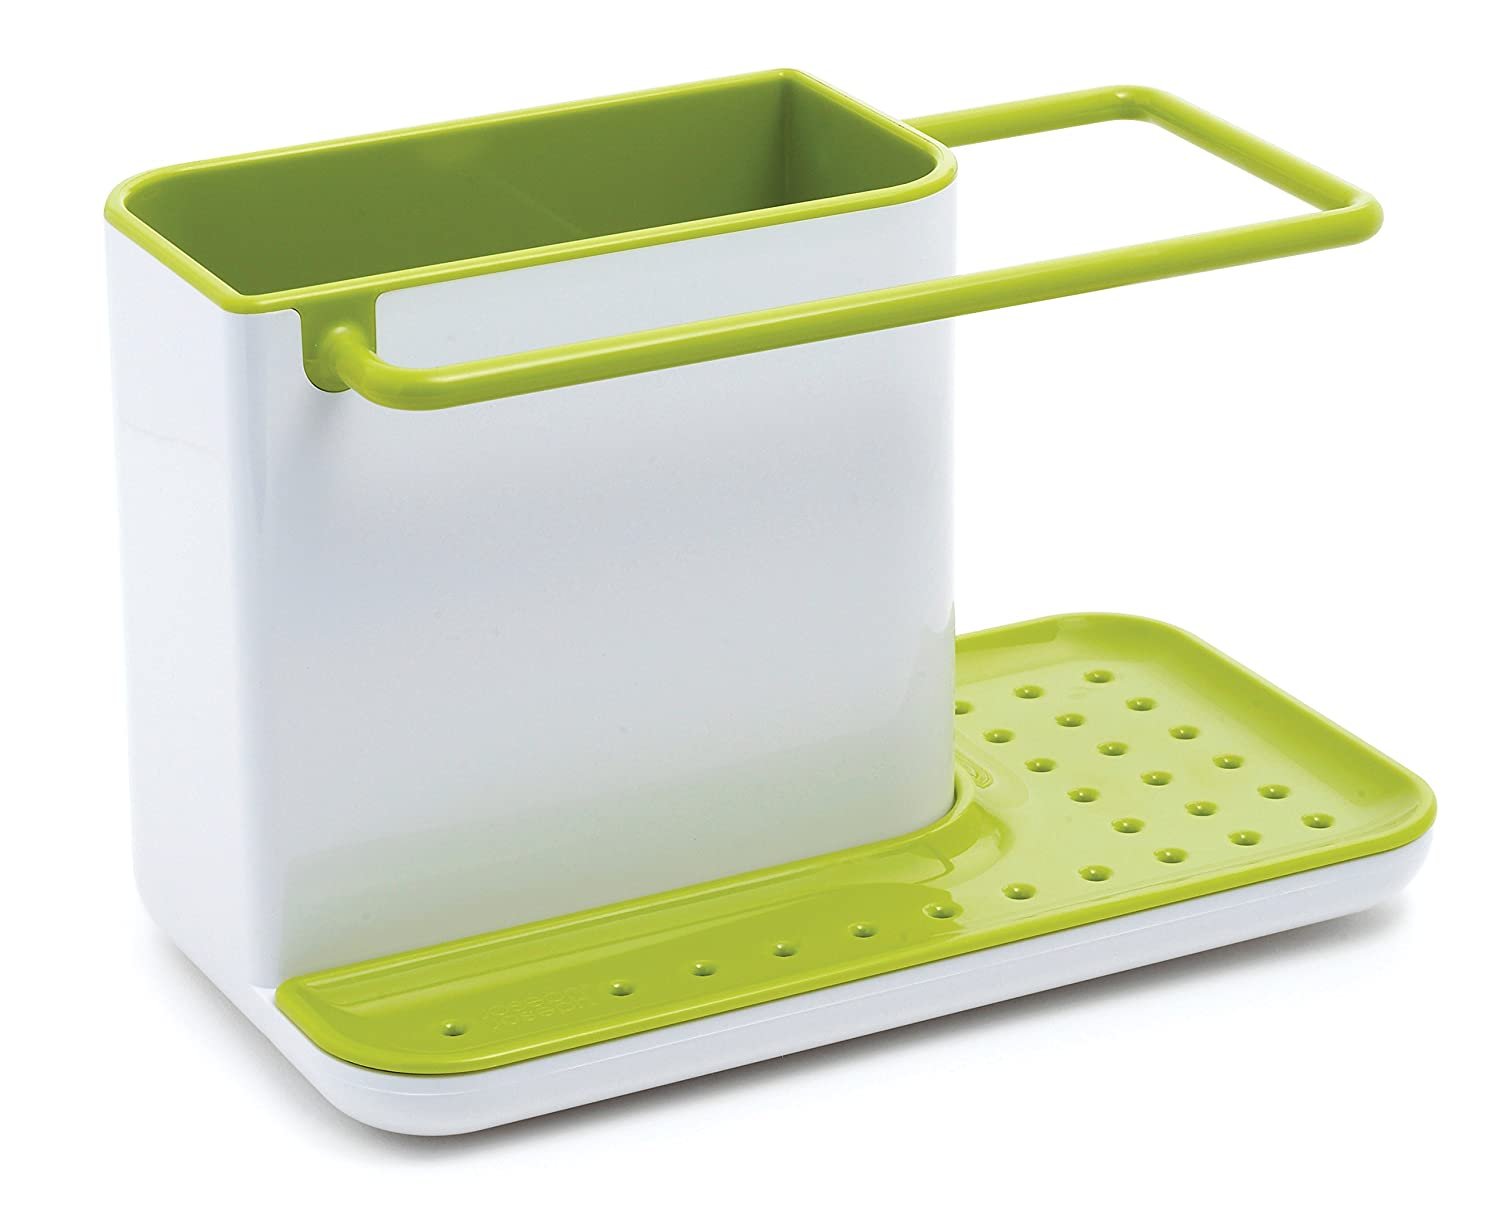 Joseph Joseph Caddy Sink Area Organiser - White/Green 85021